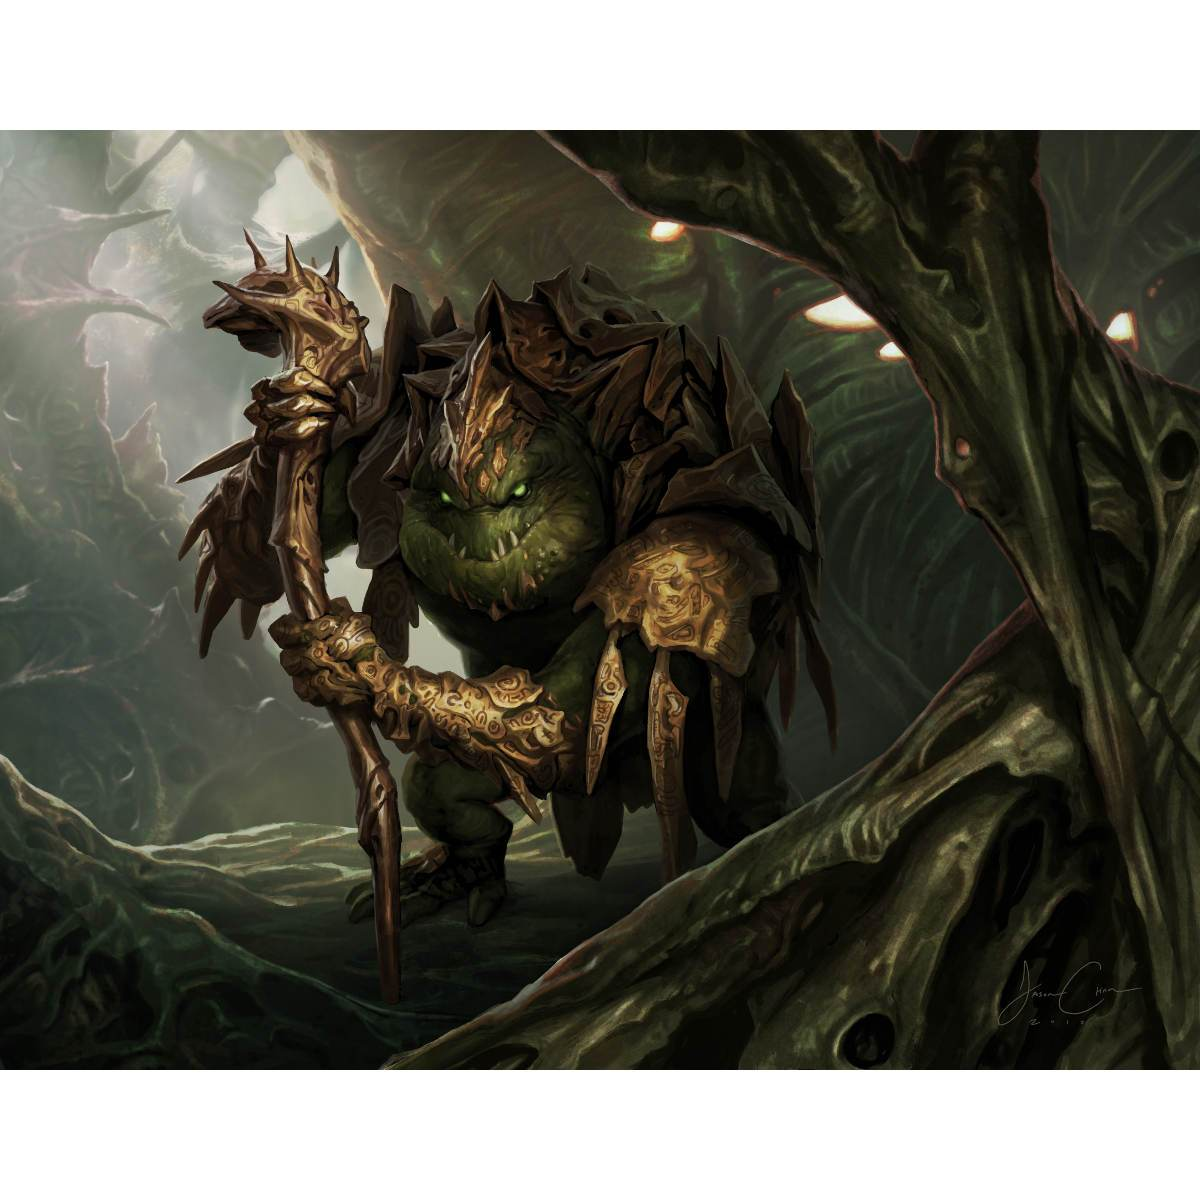 Thrun, the Last Troll Print - Print - Original Magic Art - Accessories for Magic the Gathering and other card games